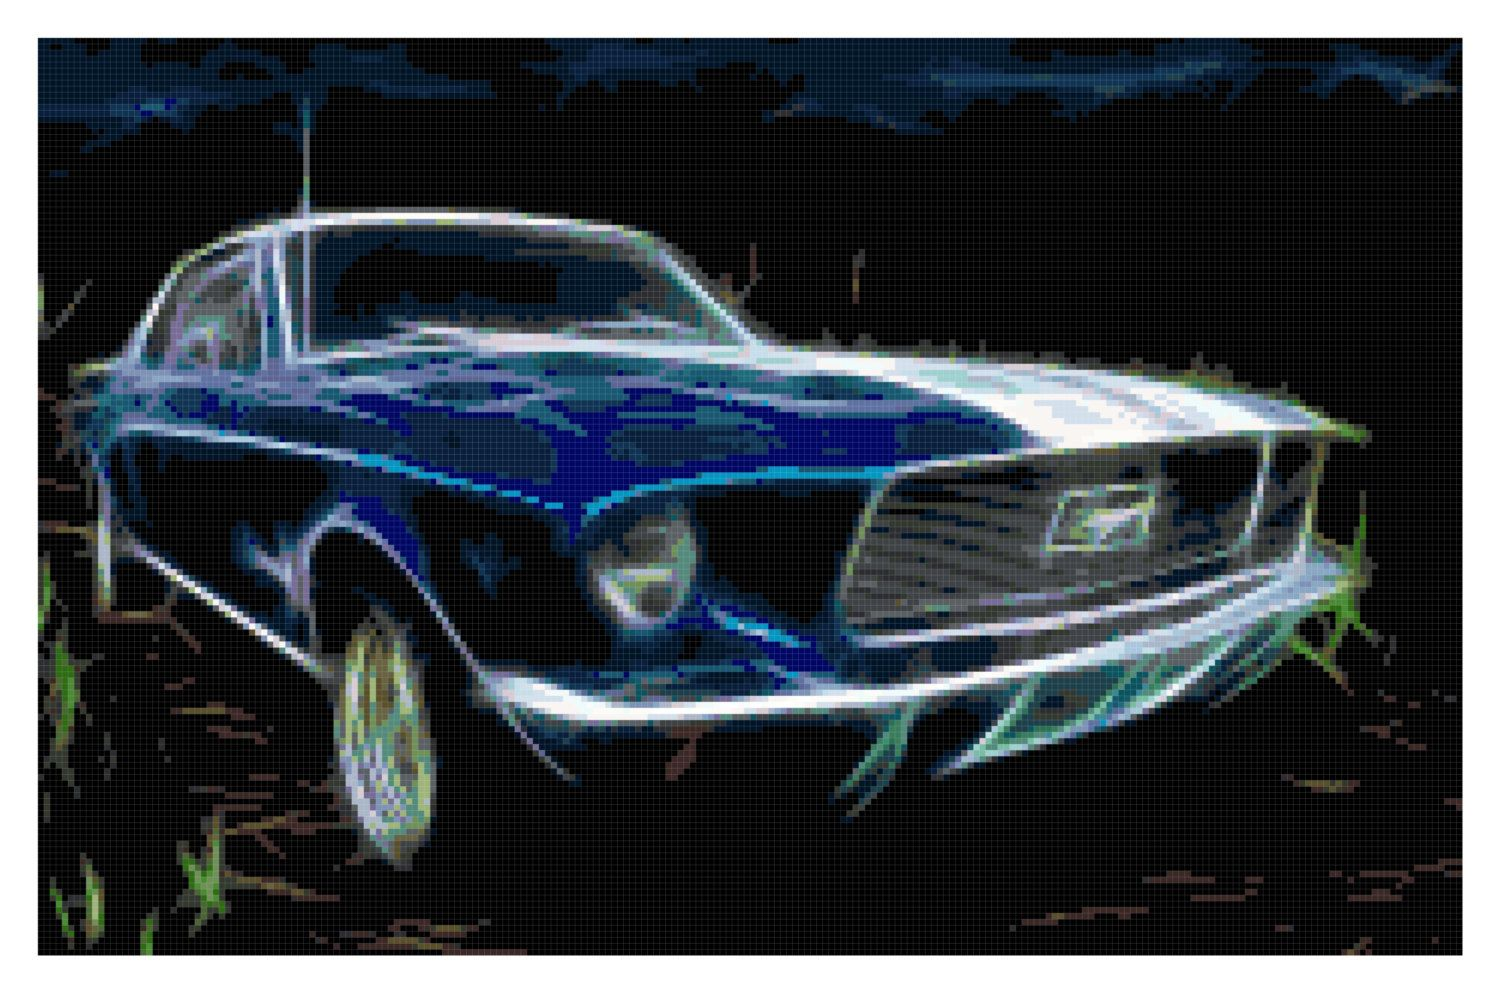 Ford mustang fractal cross stitch pattern instant download pdf by kustomcrossstitch on etsy